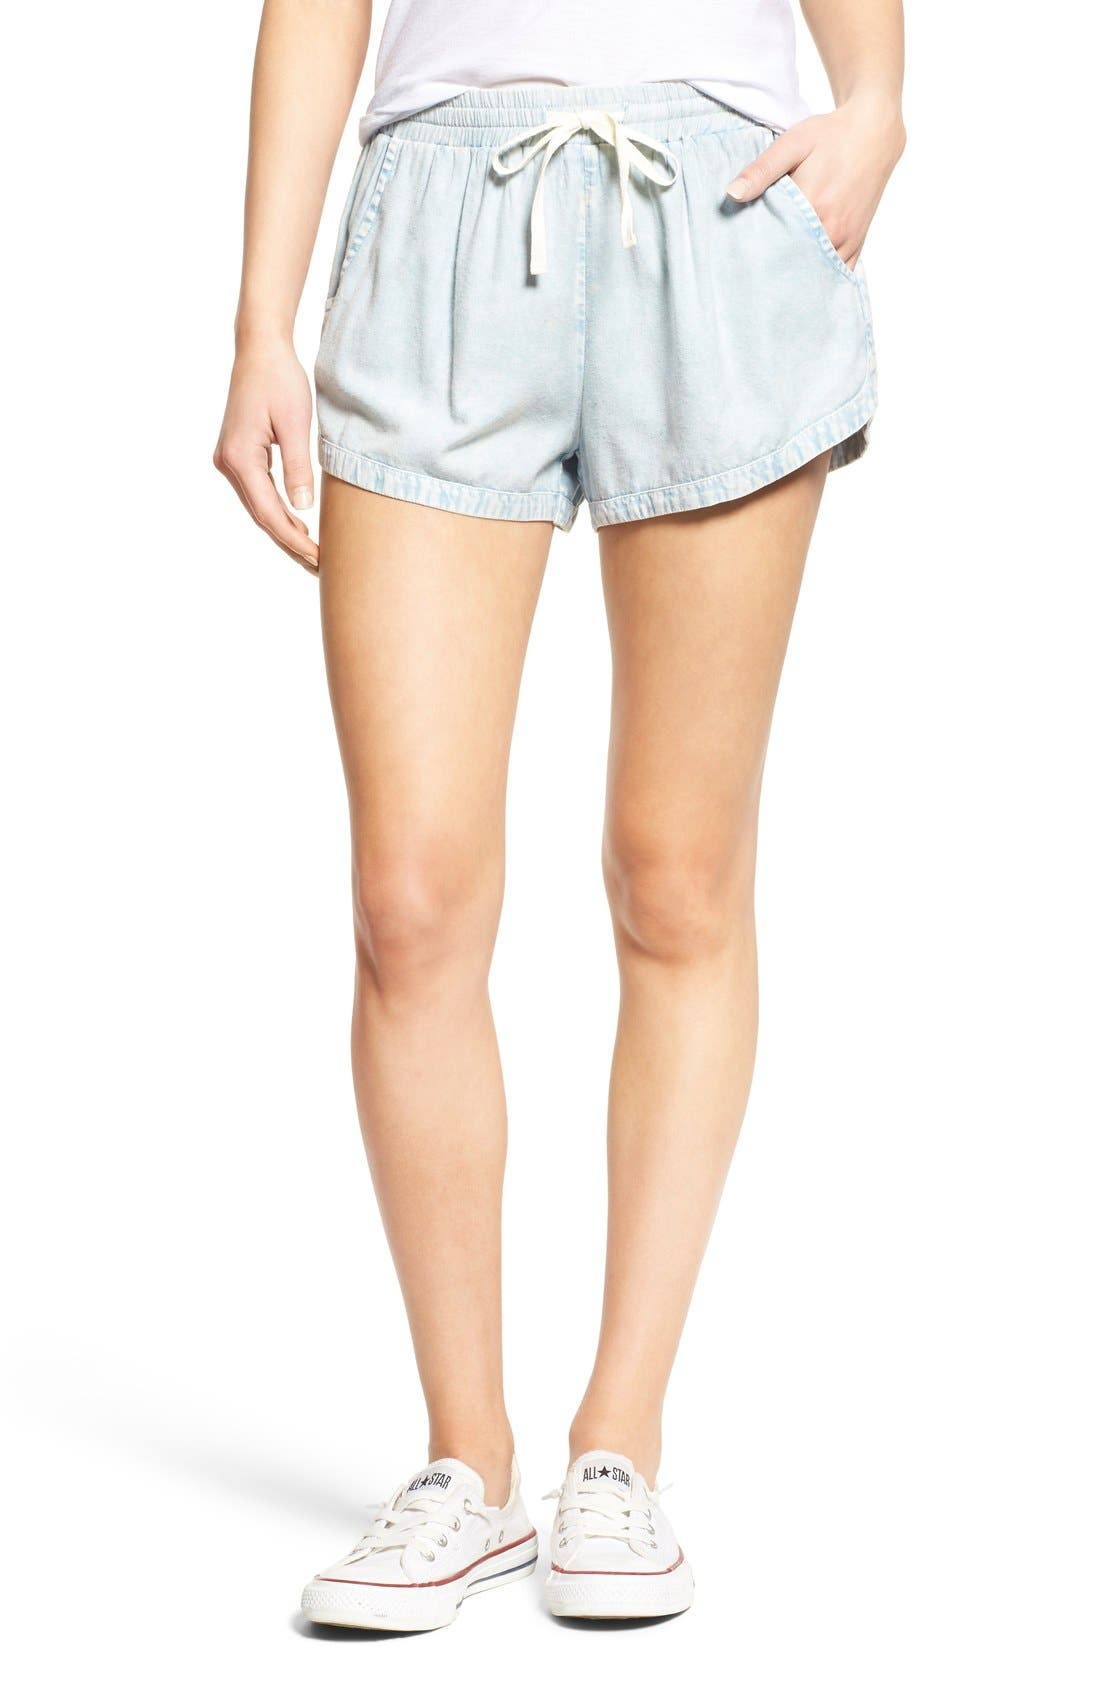 'Road Trippin' Shorts,                             Main thumbnail 1, color,                             Chambray Blue